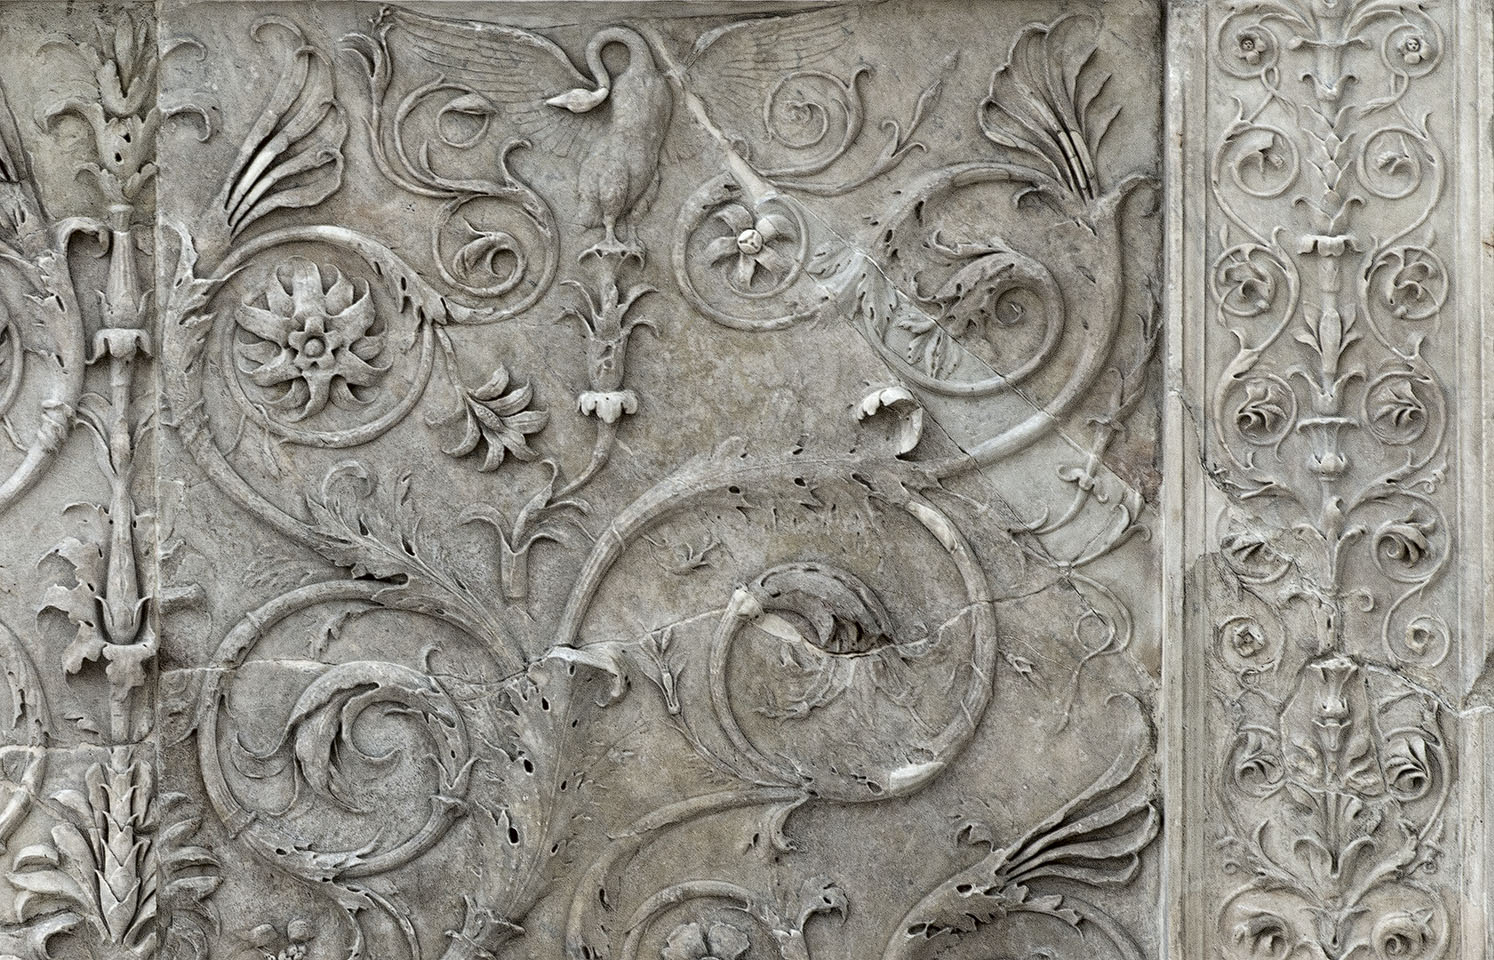 Decorative floral panel (close-up). Left part of the east facade of the Ara Pacis Augustae (lower panel). Rome, Museum of the Altar of Augustan Peace (Ara Pacis Augustae)